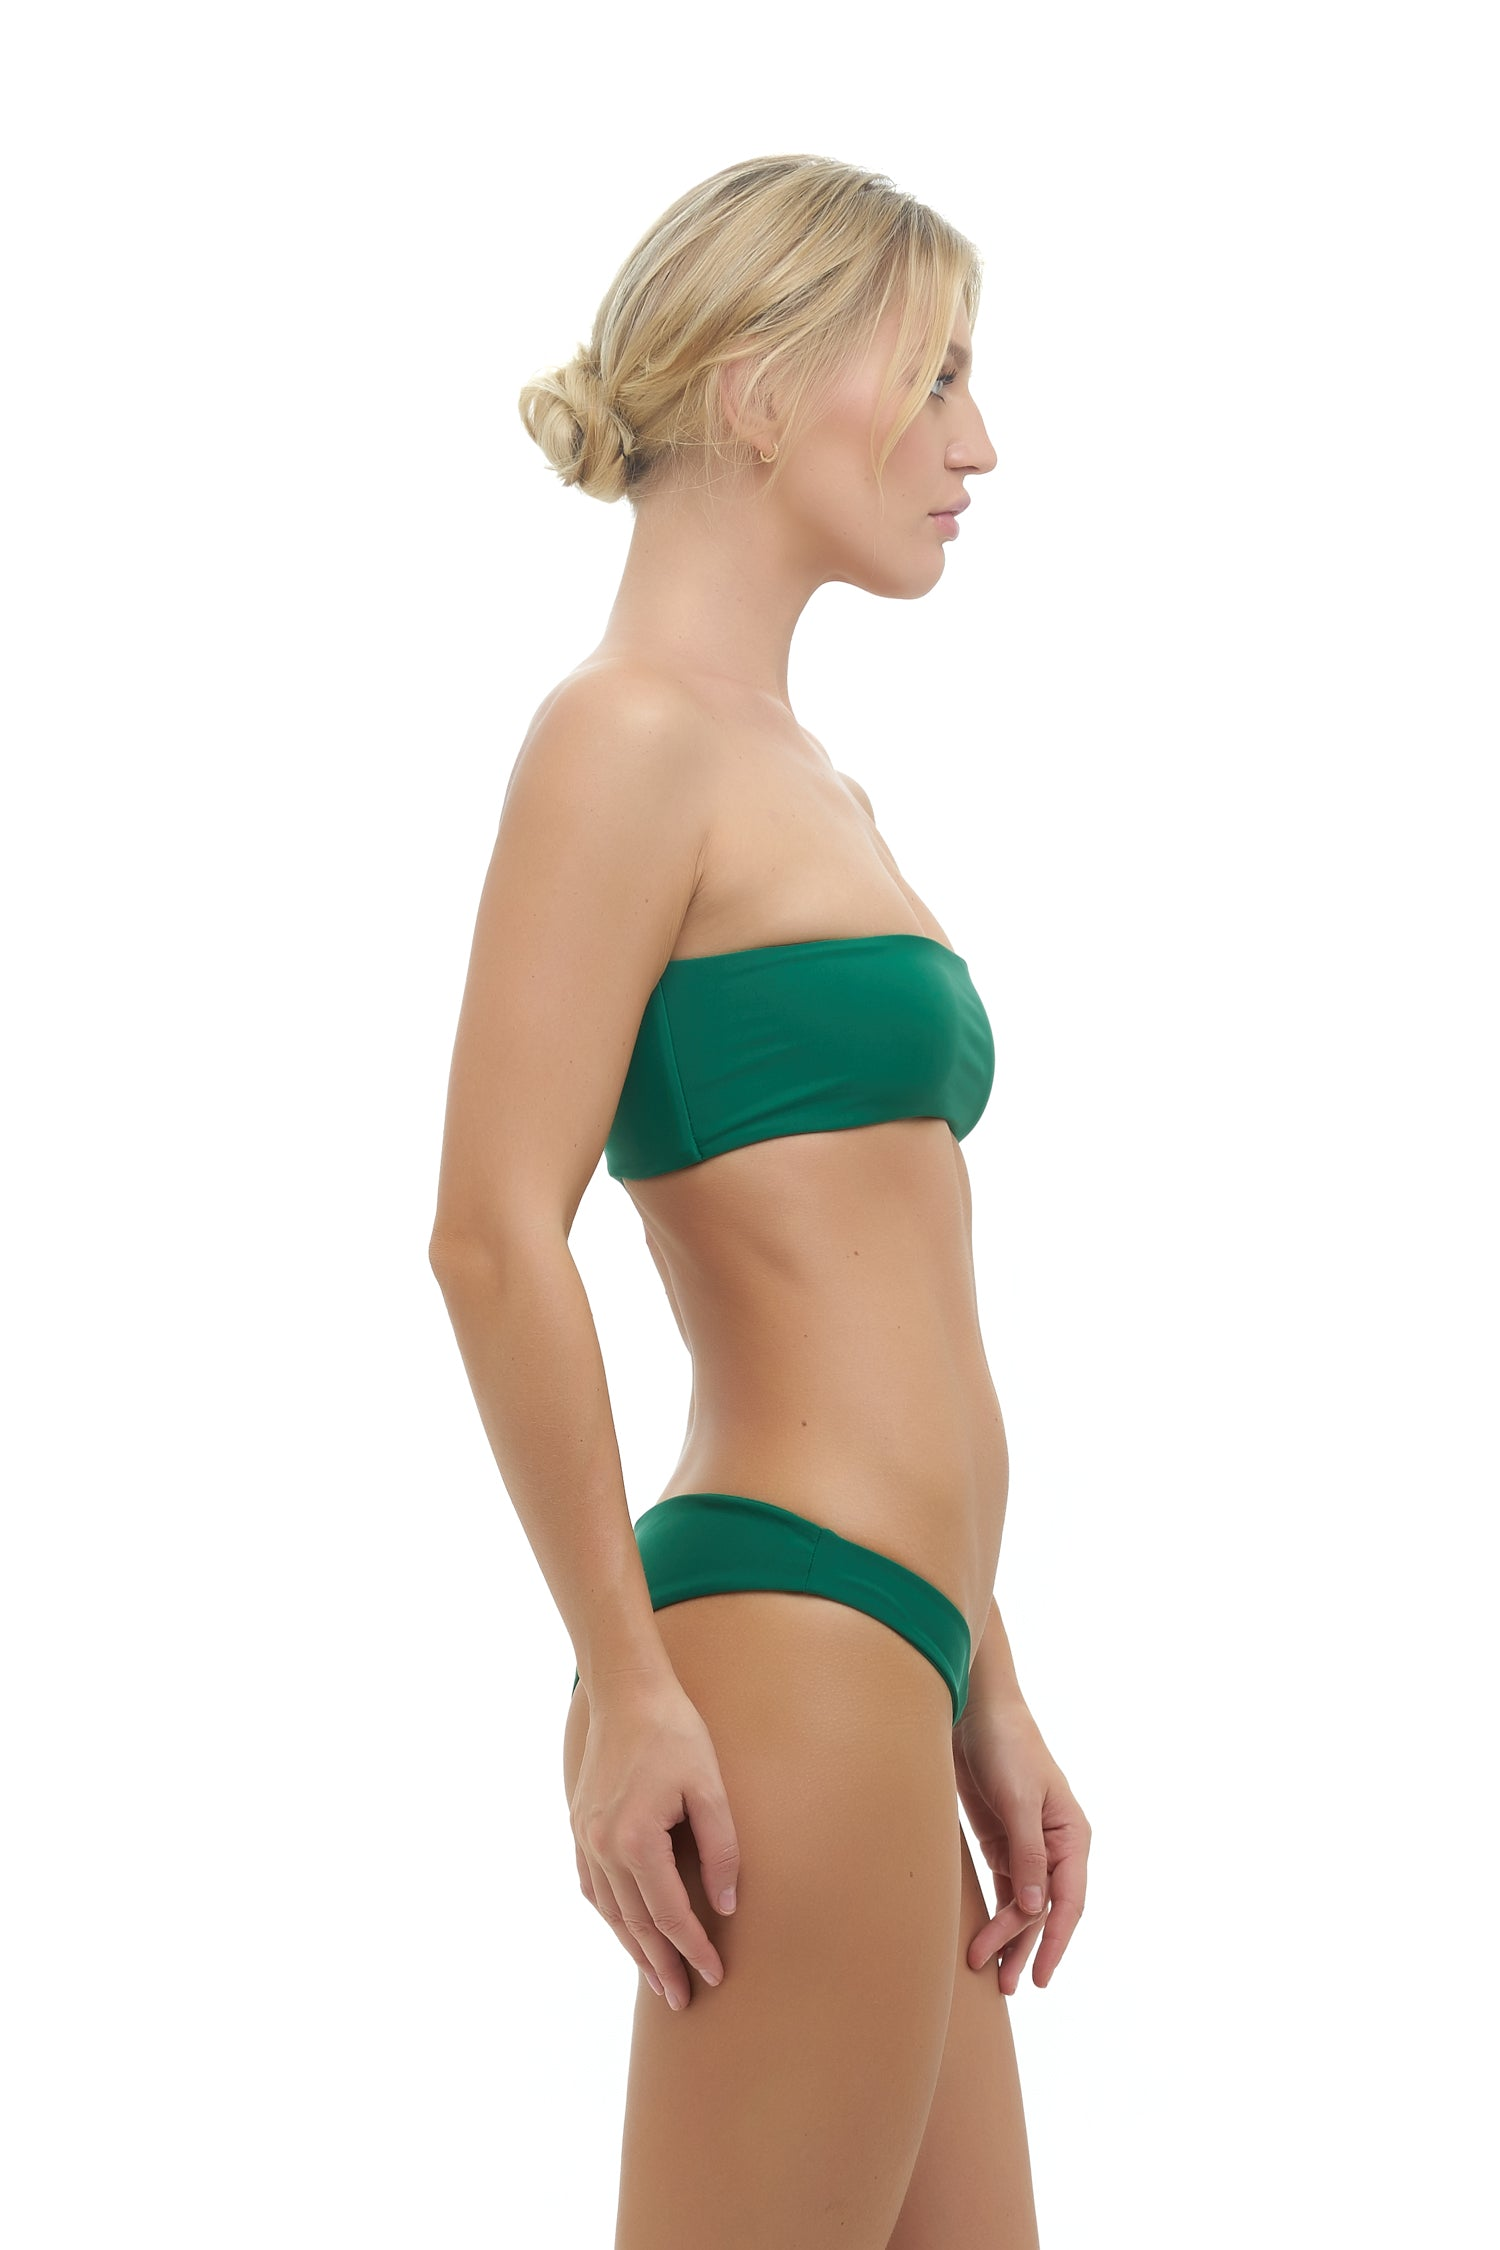 Storm Swimwear - Ravello - Plain Bandeu Bikini Top in Palm Green